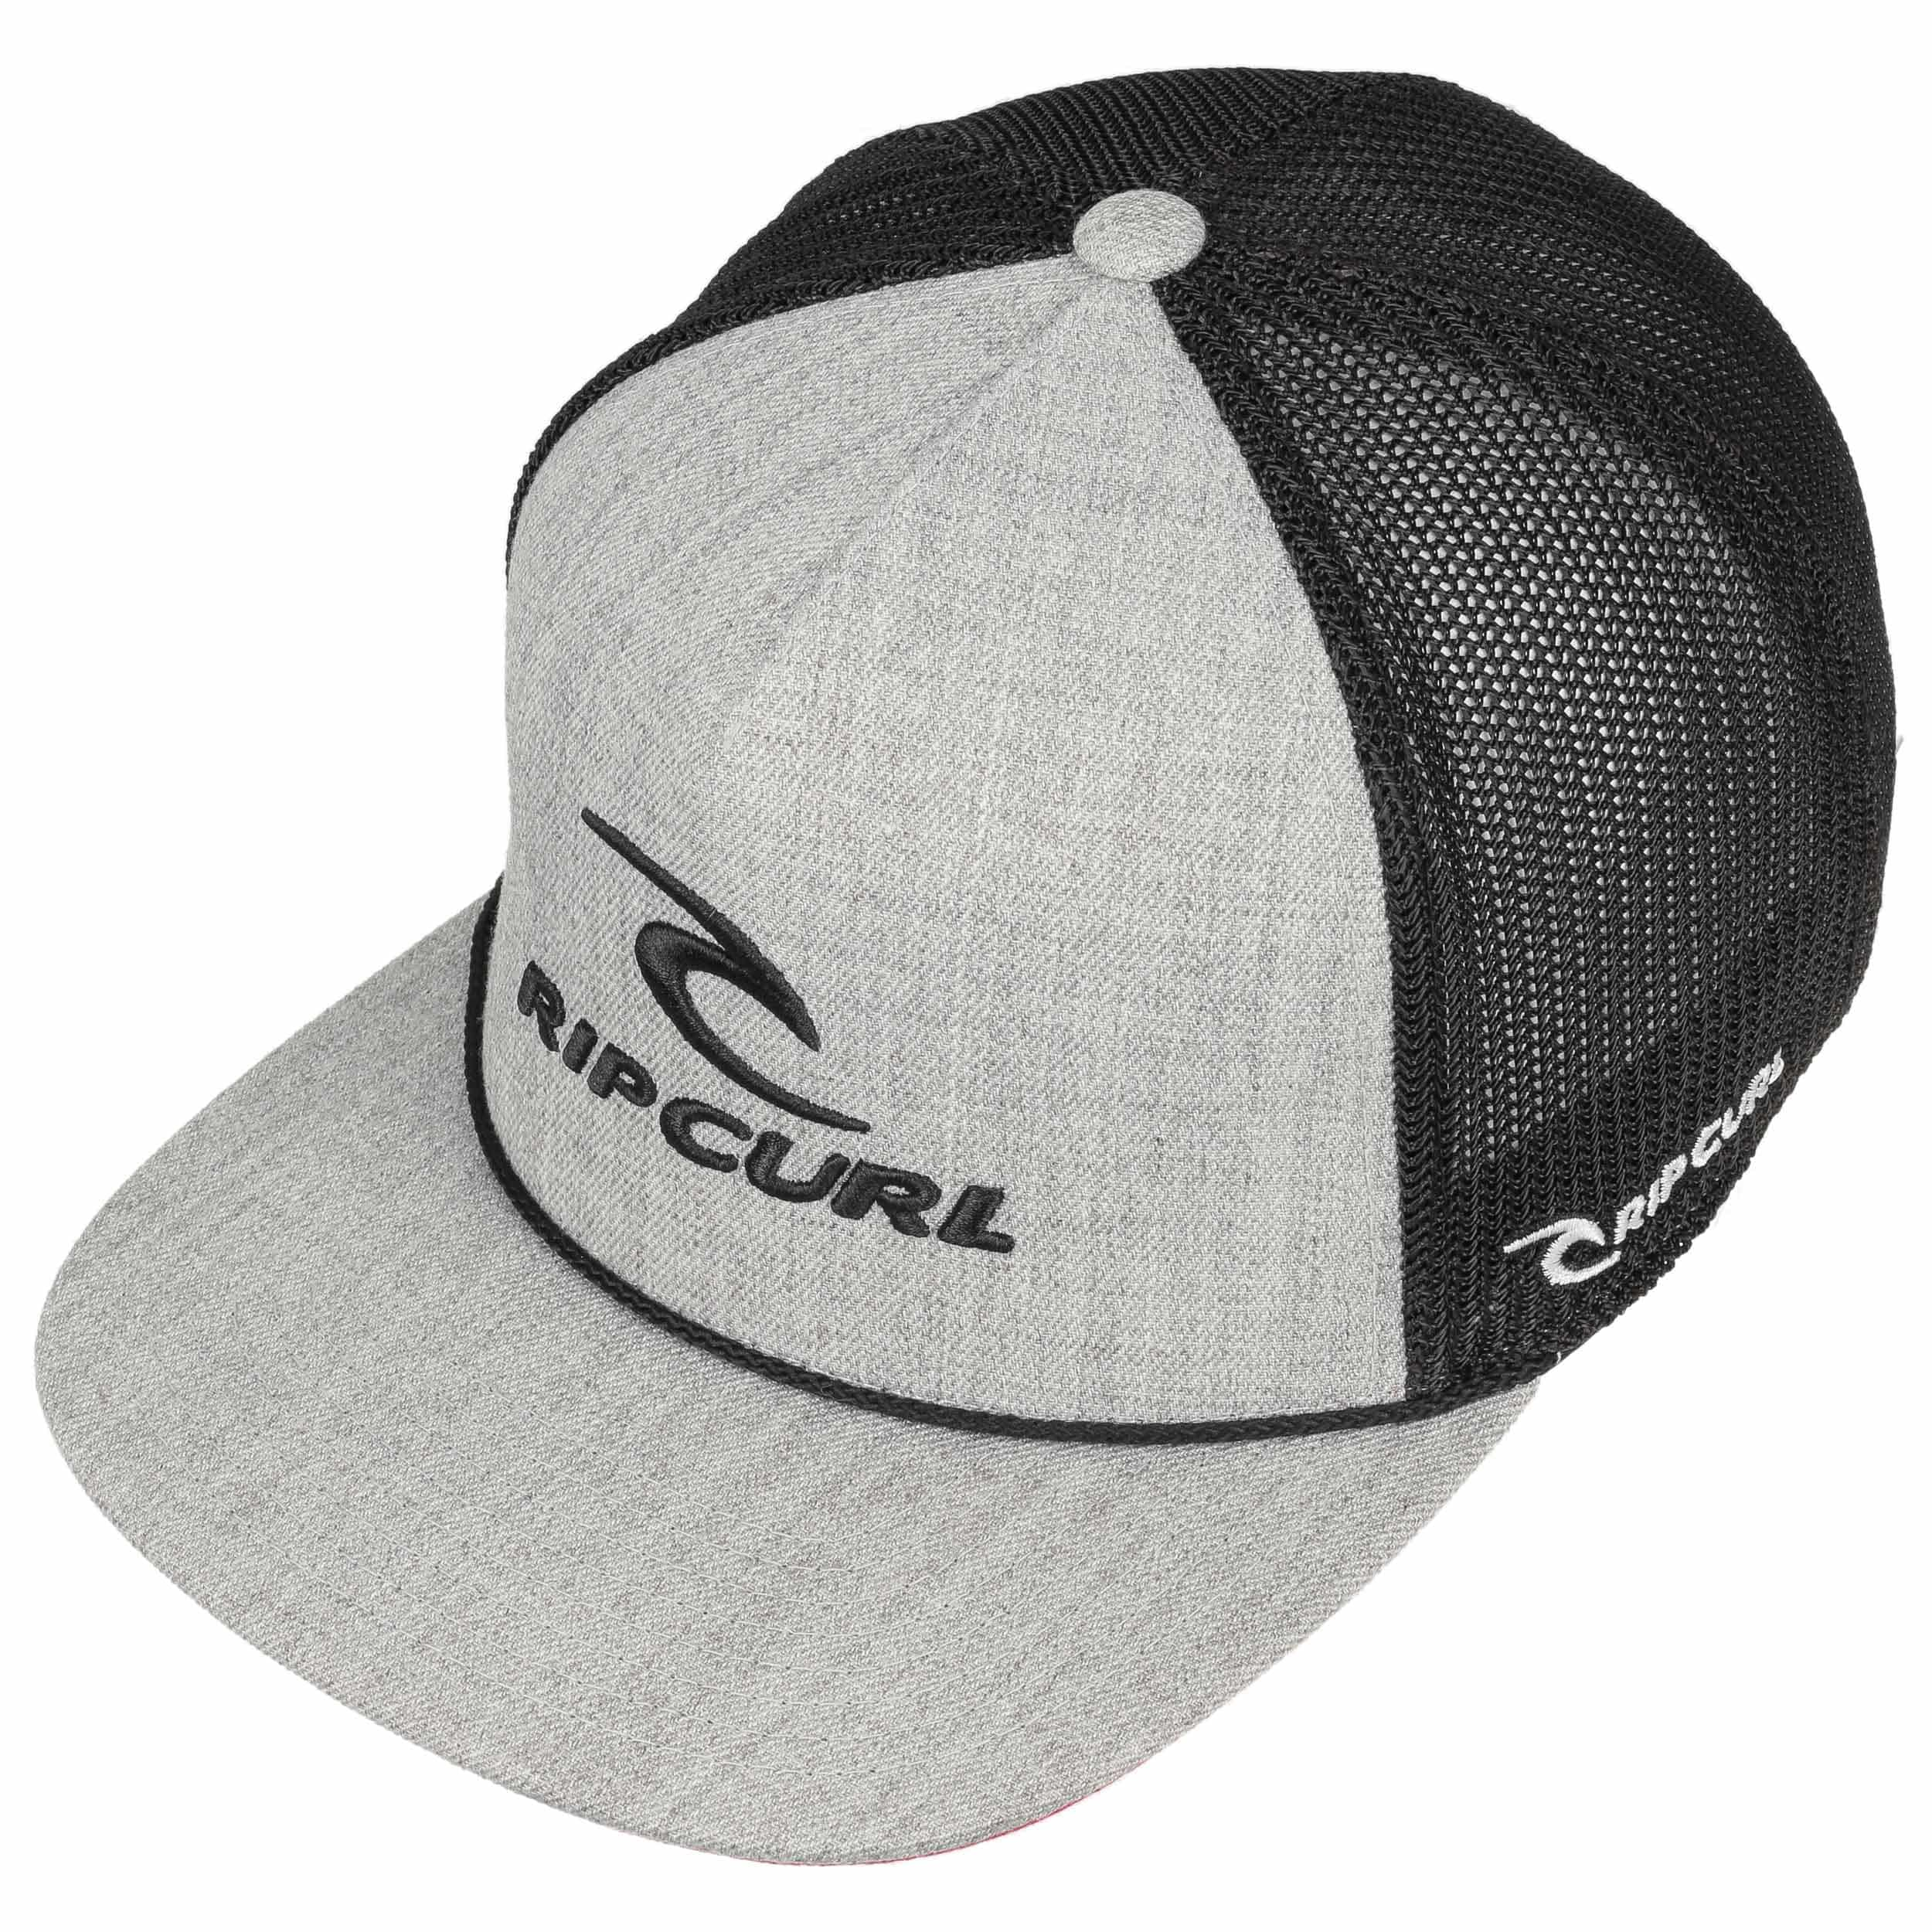 Rippy Team Trucker Cap by Rip Curl - light grey 1 ... ba6b7ee973d6